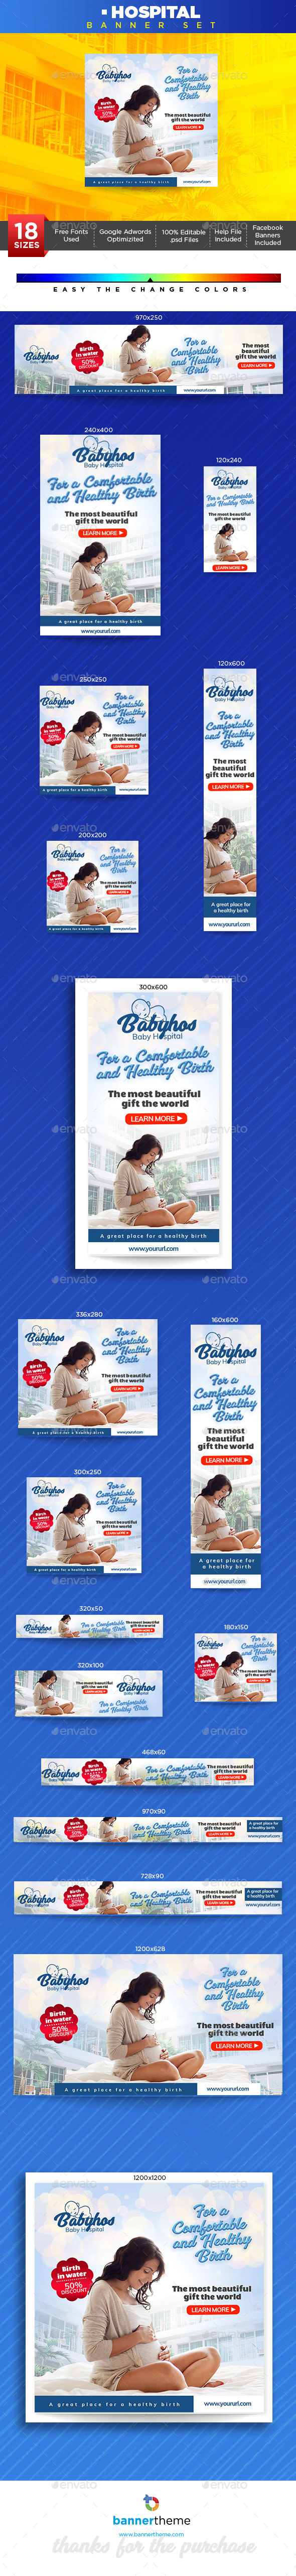 Hospital Banner - Banners & Ads Web Elements